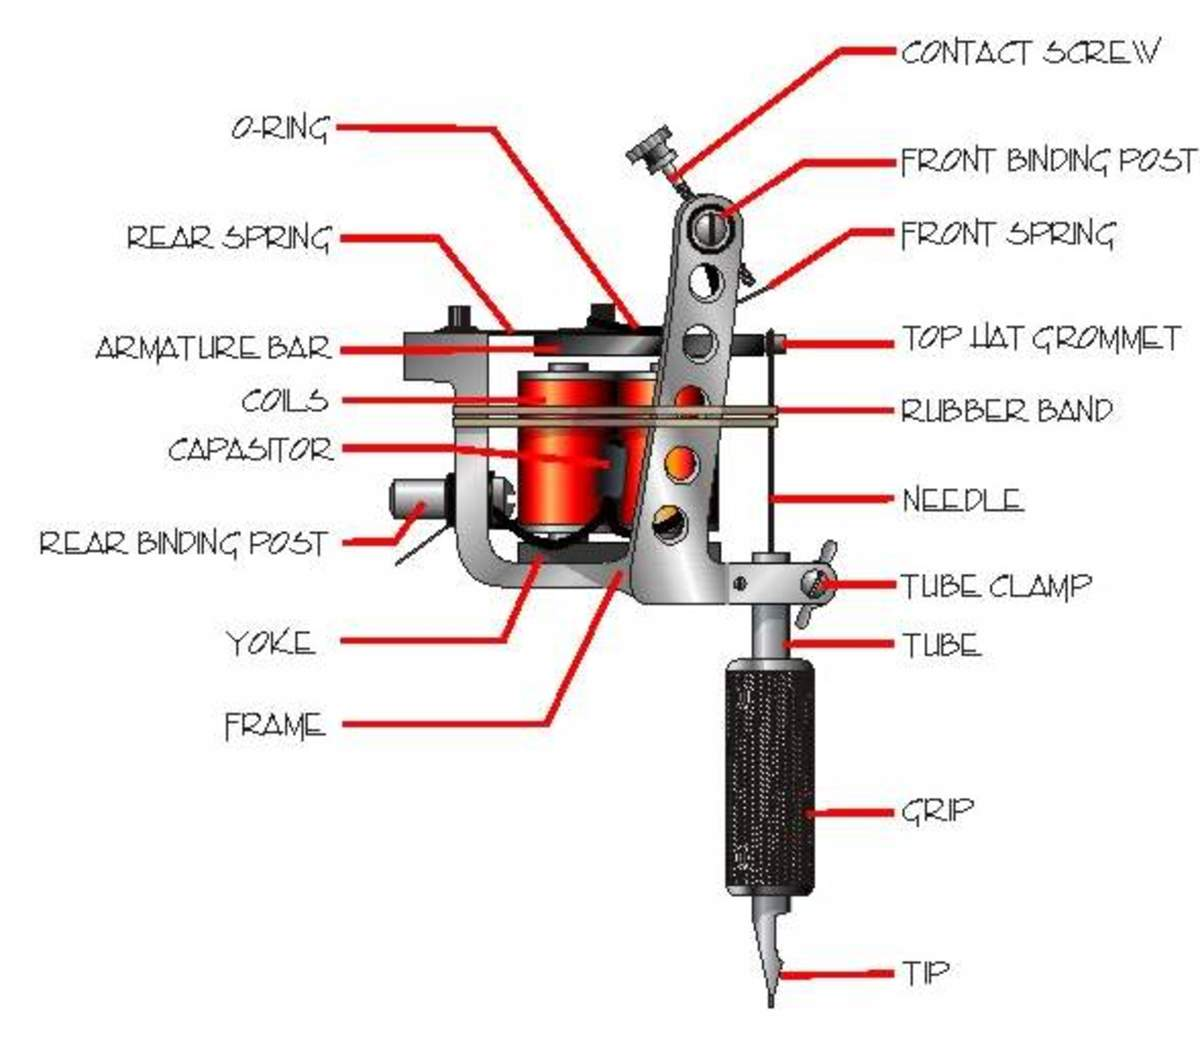 Great diagram, you cannot see the capacitator is the only thing.